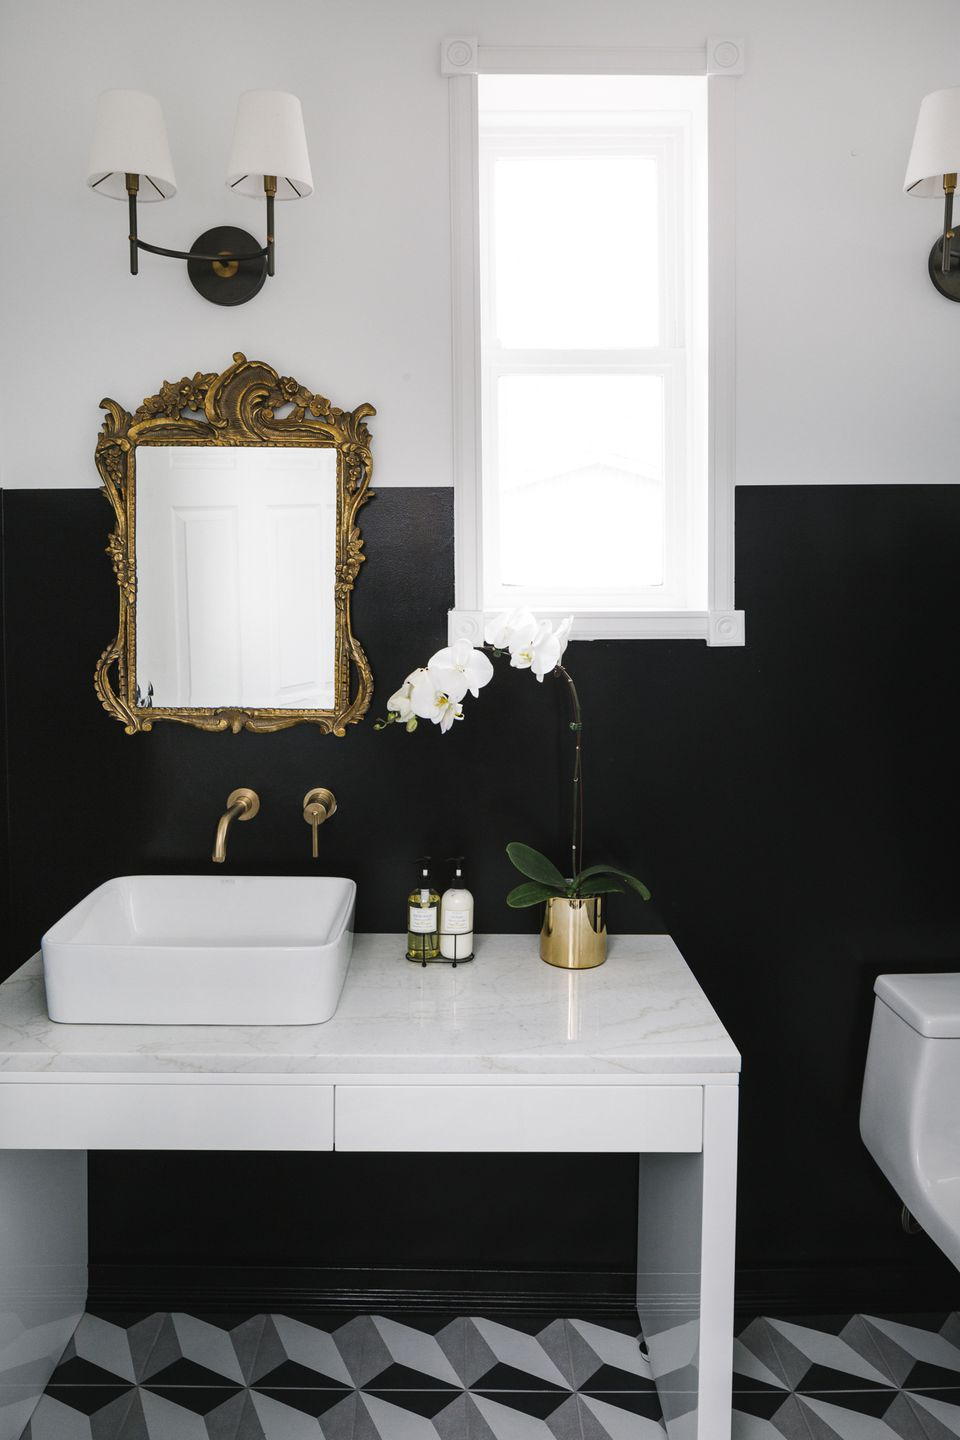 Pictures Of Black And White Bathrooms. black and white bathroom modern 3D illusion tile Home Makeover  An Interior Designer s Glam Black White Denver